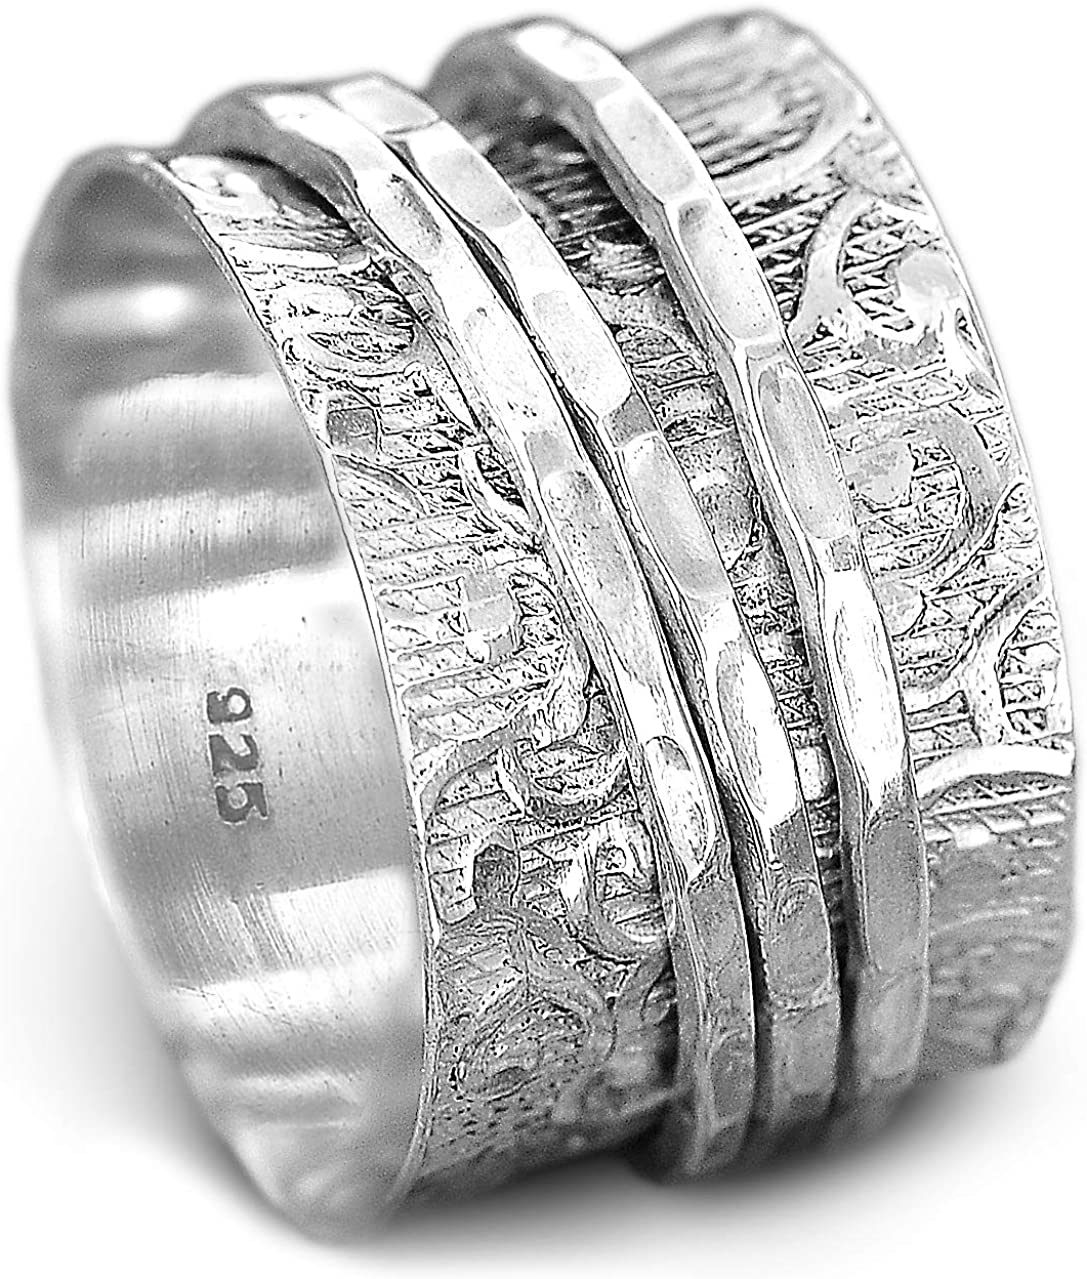 anxiety ring silver Thumb ring Silver spinner ring Sterling silver ring meditation ring 925 silver ring Promise ring